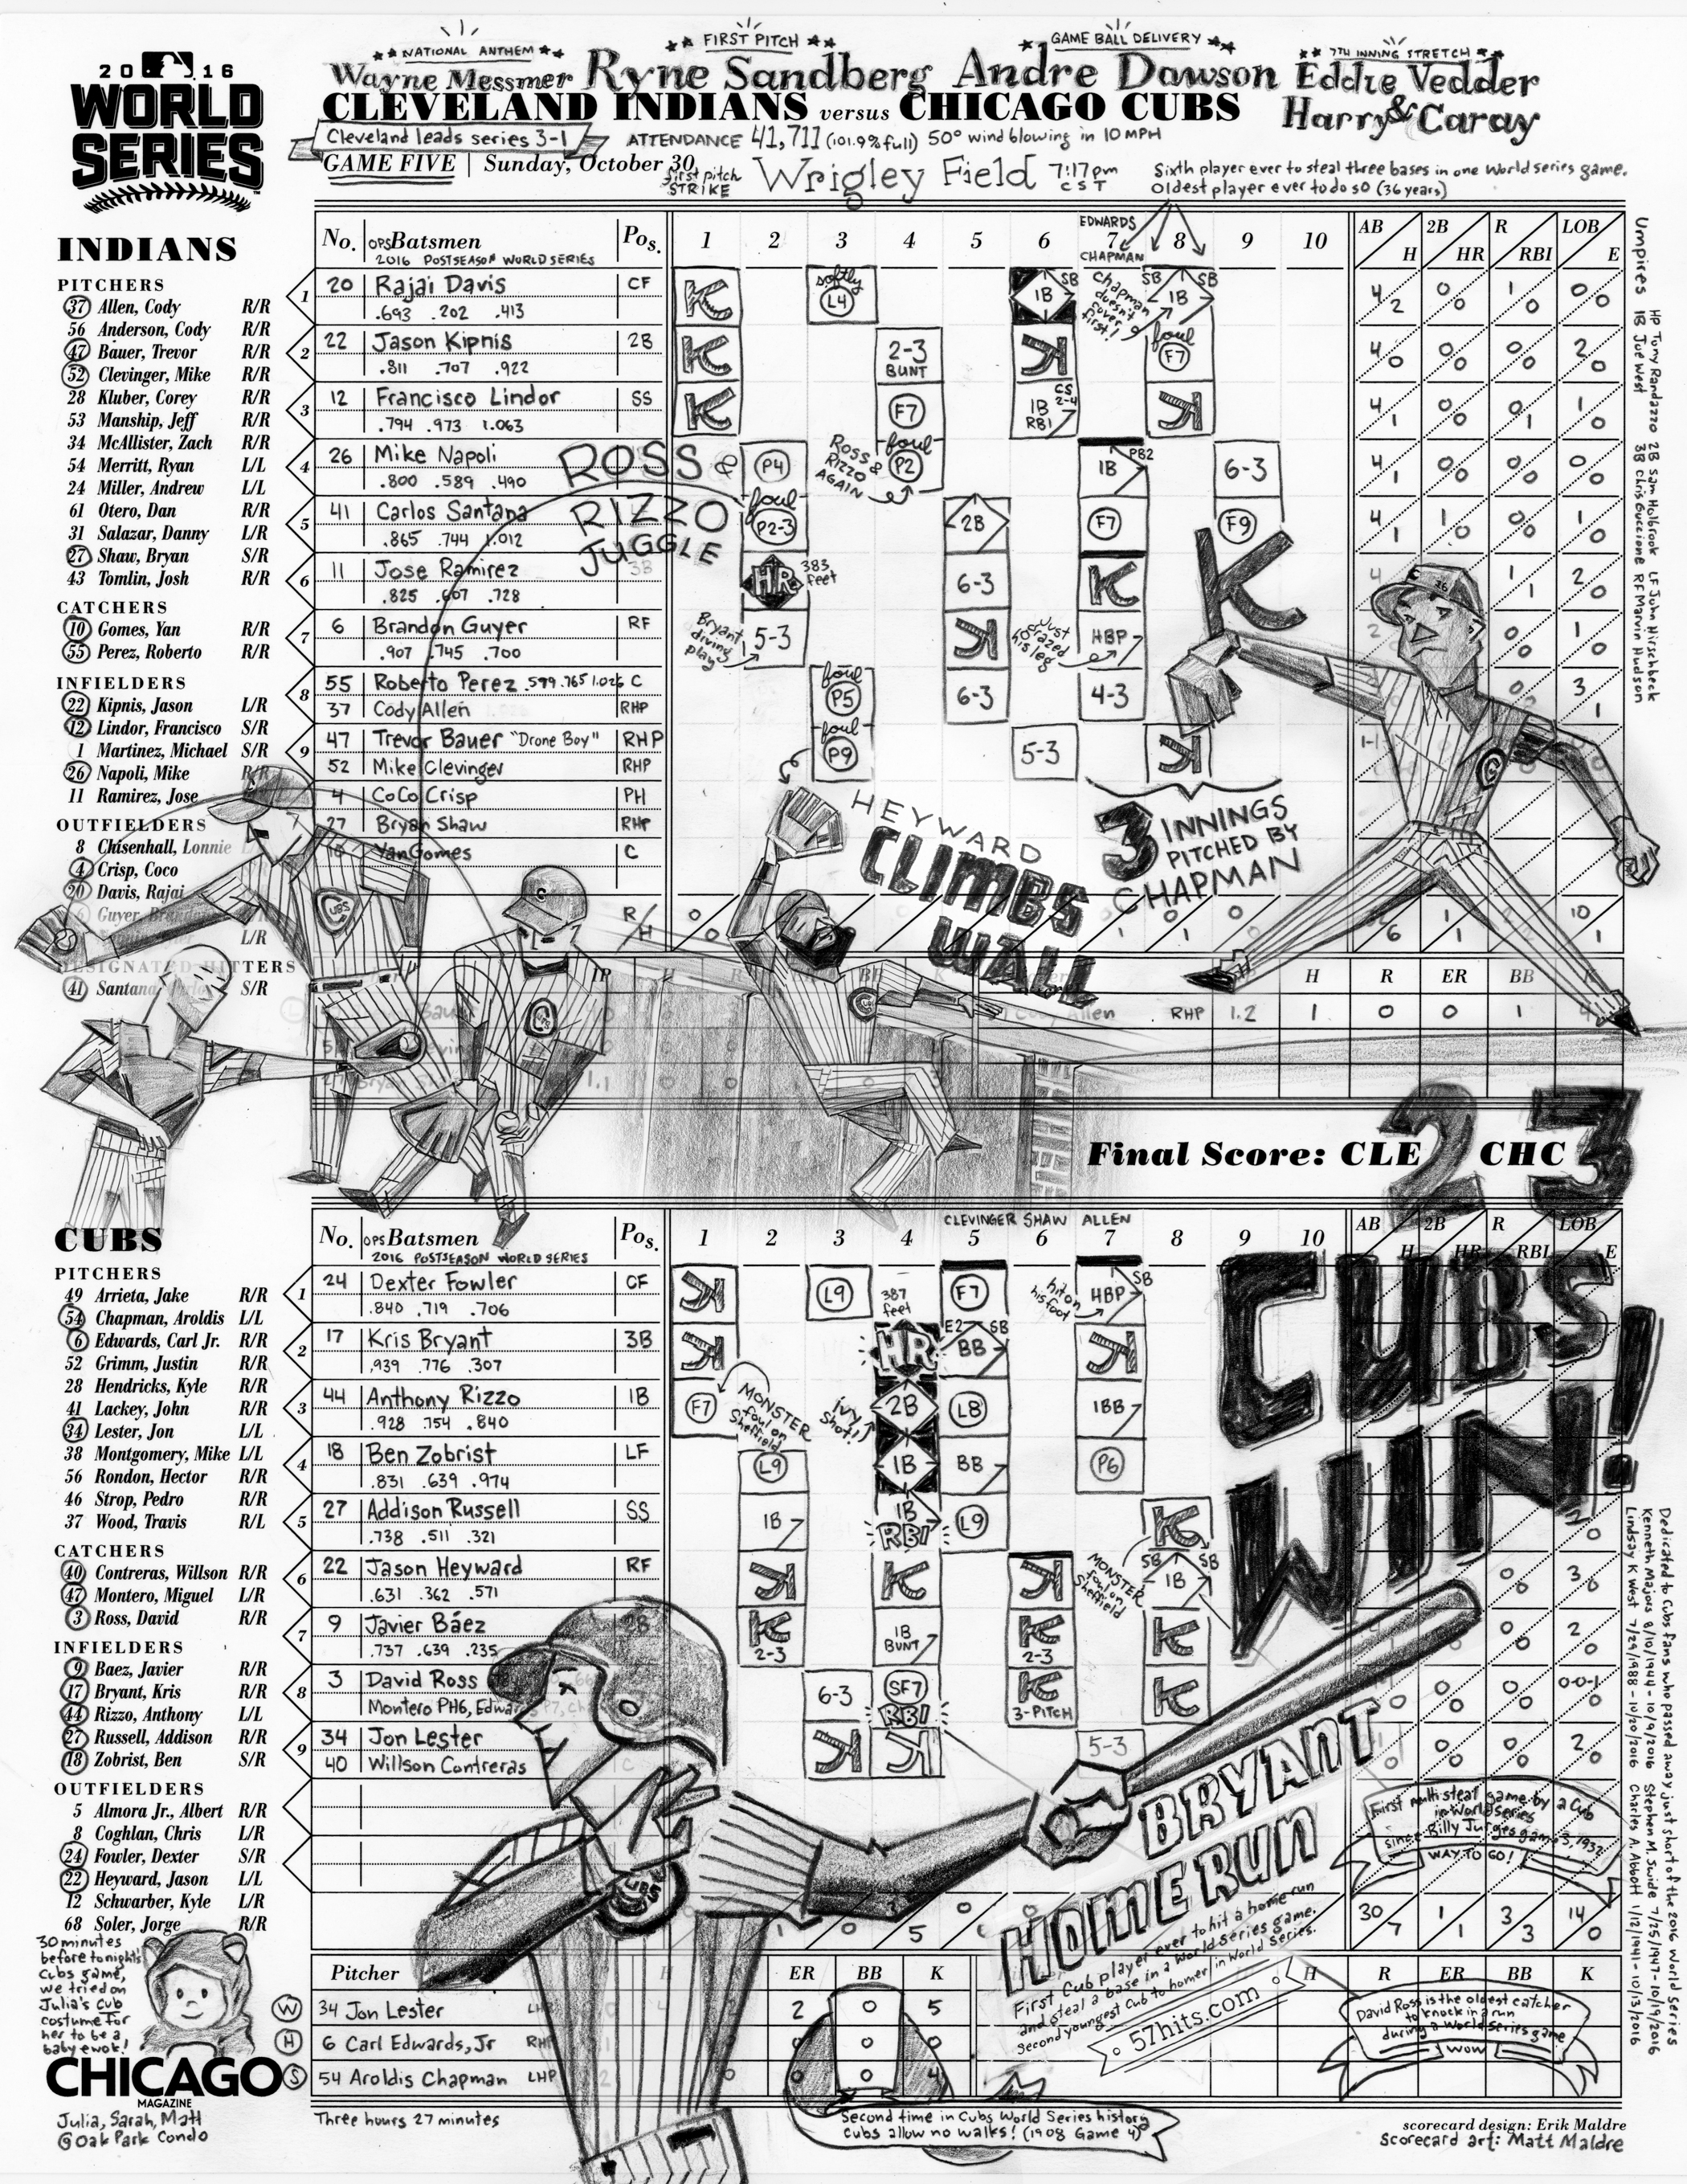 Game 5 scorecard for 2016 World Series by Matt Maldre